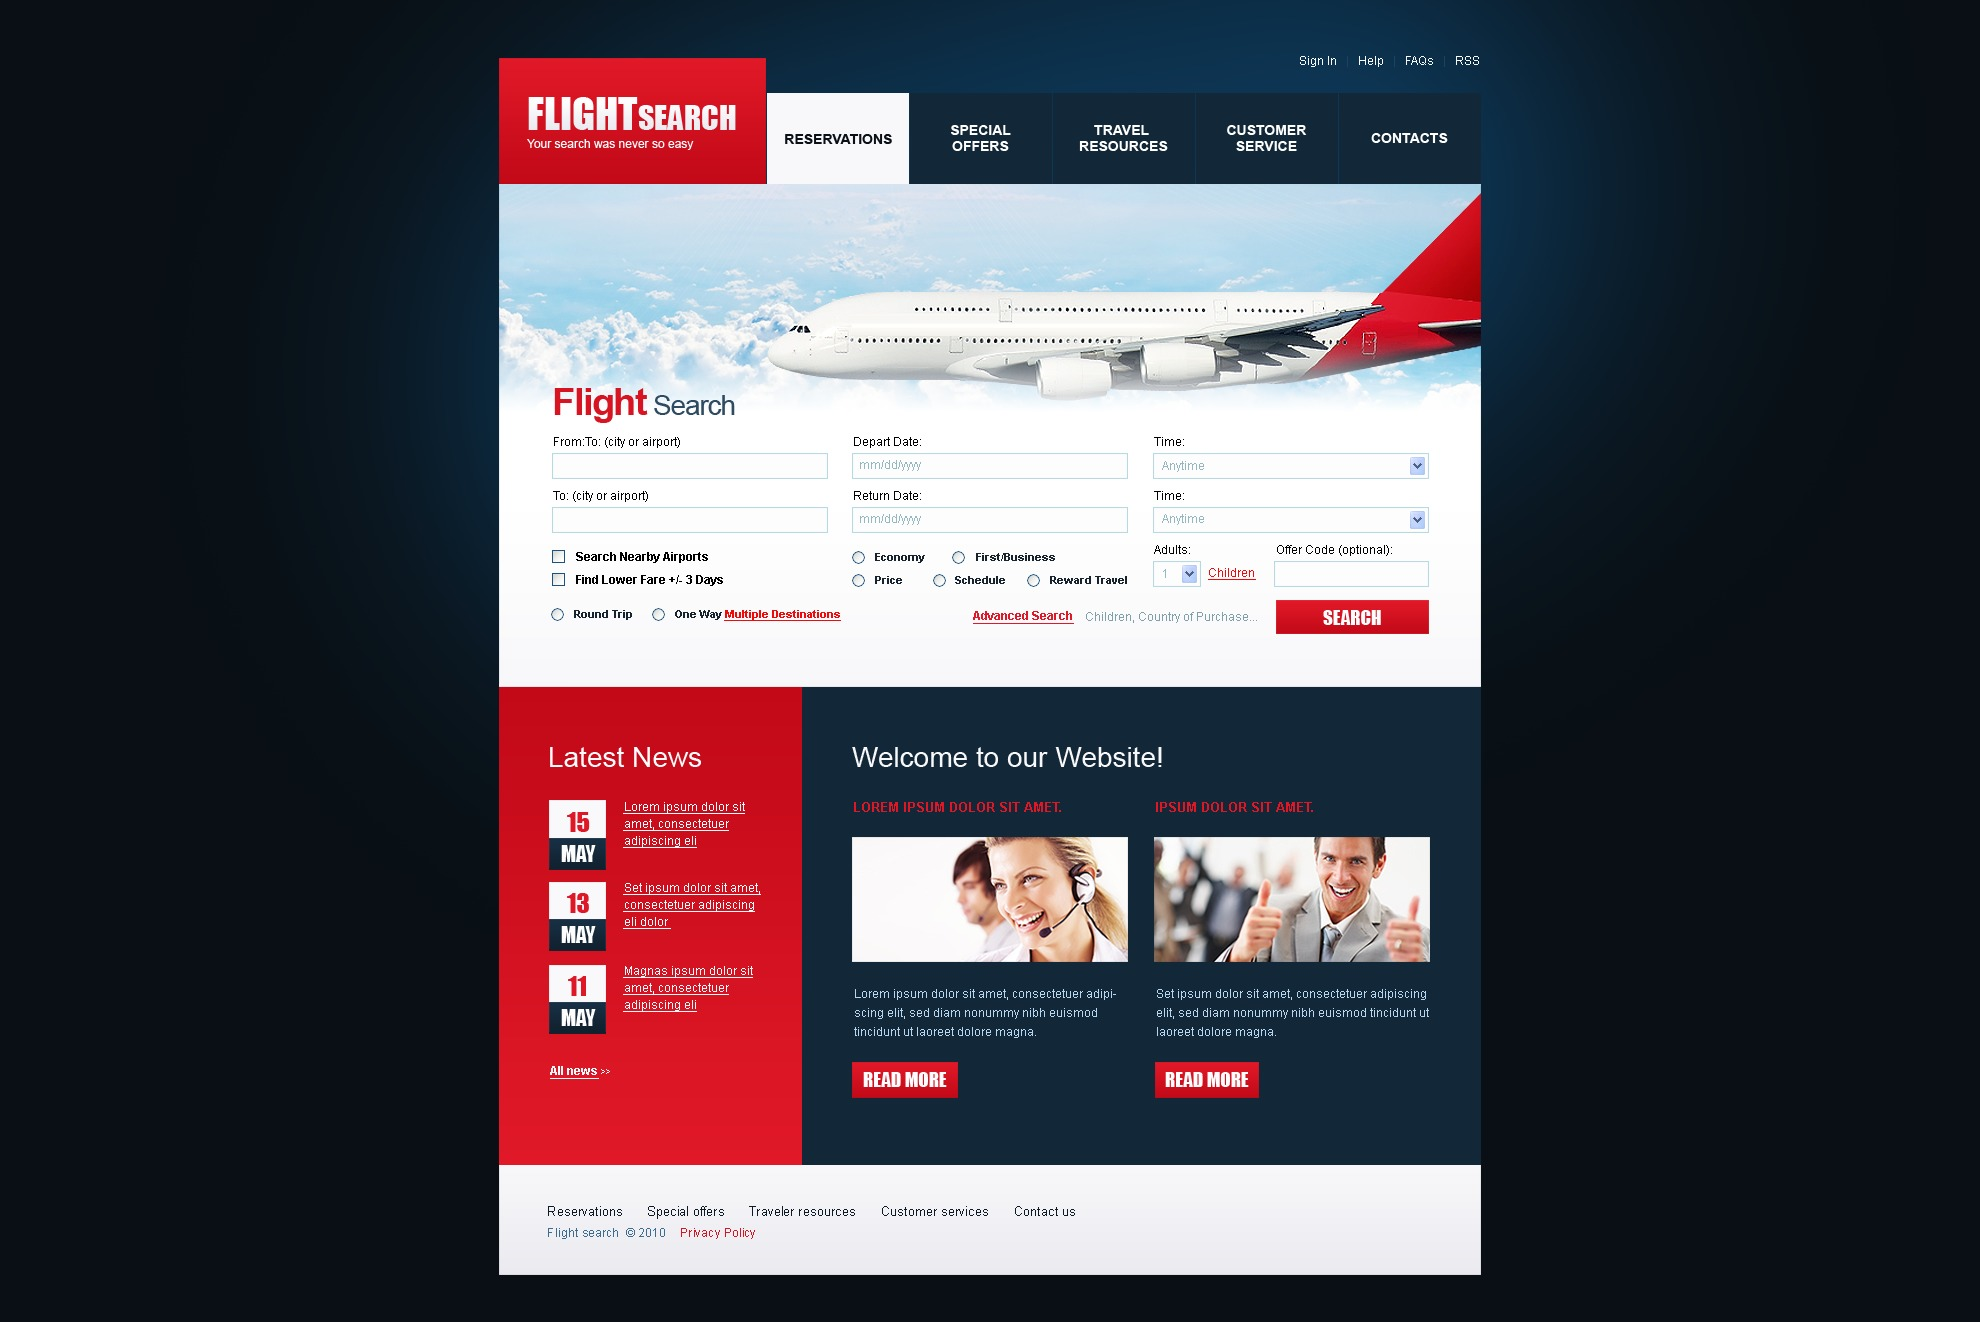 The Flight Search PSD Design 54086, one of the best PSD templates of its kind (travel, transportation, most popular, flash 8, wide), also known as flight search PSD template, reservations PSD template, travel PSD template, customer company PSD template, services PSD template, tour hotel PSD template, car PSD template, rental PSD template, cruise PSD template, sights PSD template, location PSD template, authorization PSD template, ticket PSD template, guide PSD template, beach PSD template, sea PSD template, relaxation PSD template, recreation and related with flight search, reservations, travel, customer company, services, tour hotel, car, rental, cruise, sights, location, authorization, ticket, guide, beach, sea, relaxation, recreation, etc.